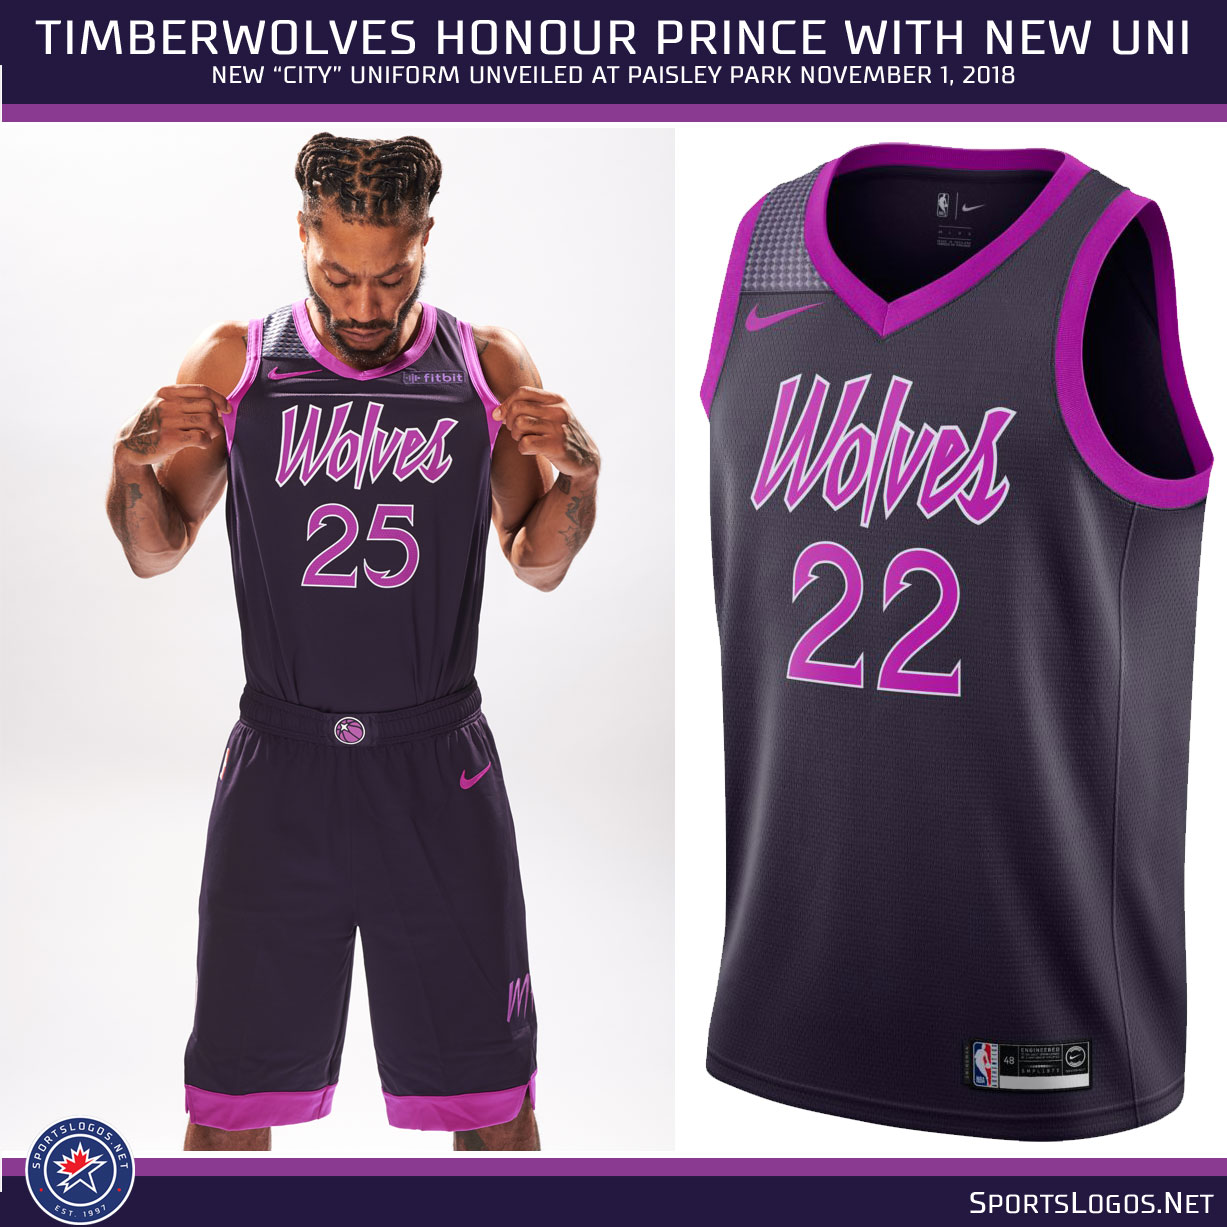 Minnesota-Timberwolves-New-Prince-Uniforms-1.jpg